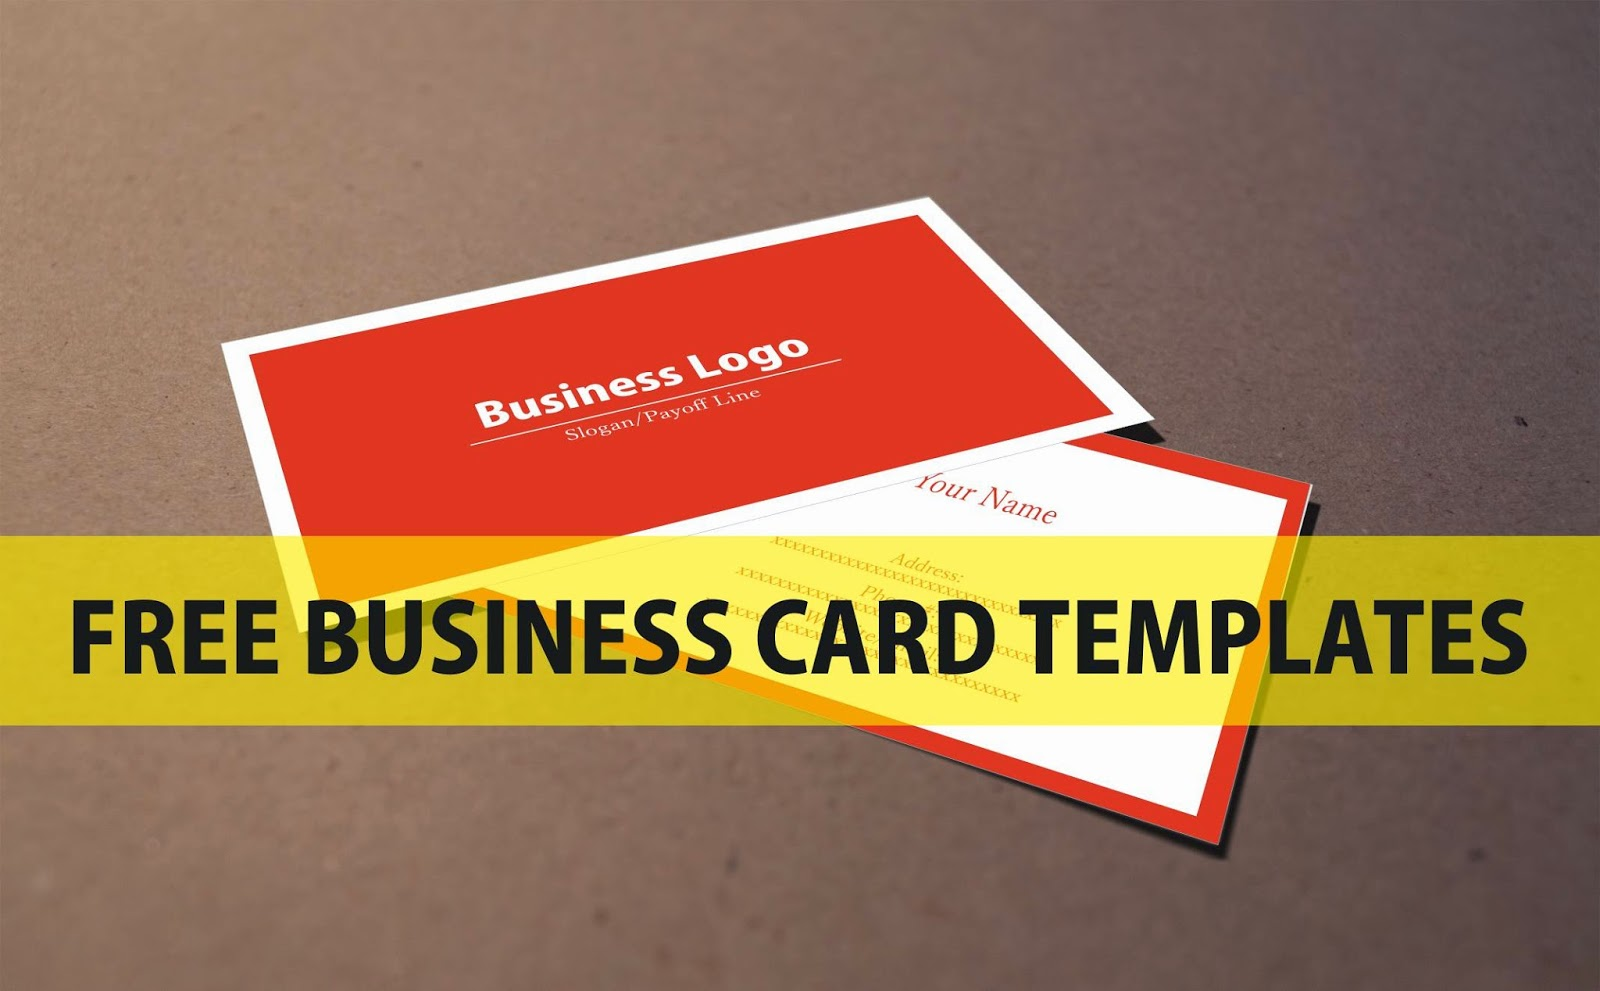 Templates for business cards free dawaydabrowa templates for business cards free fbccfo Gallery